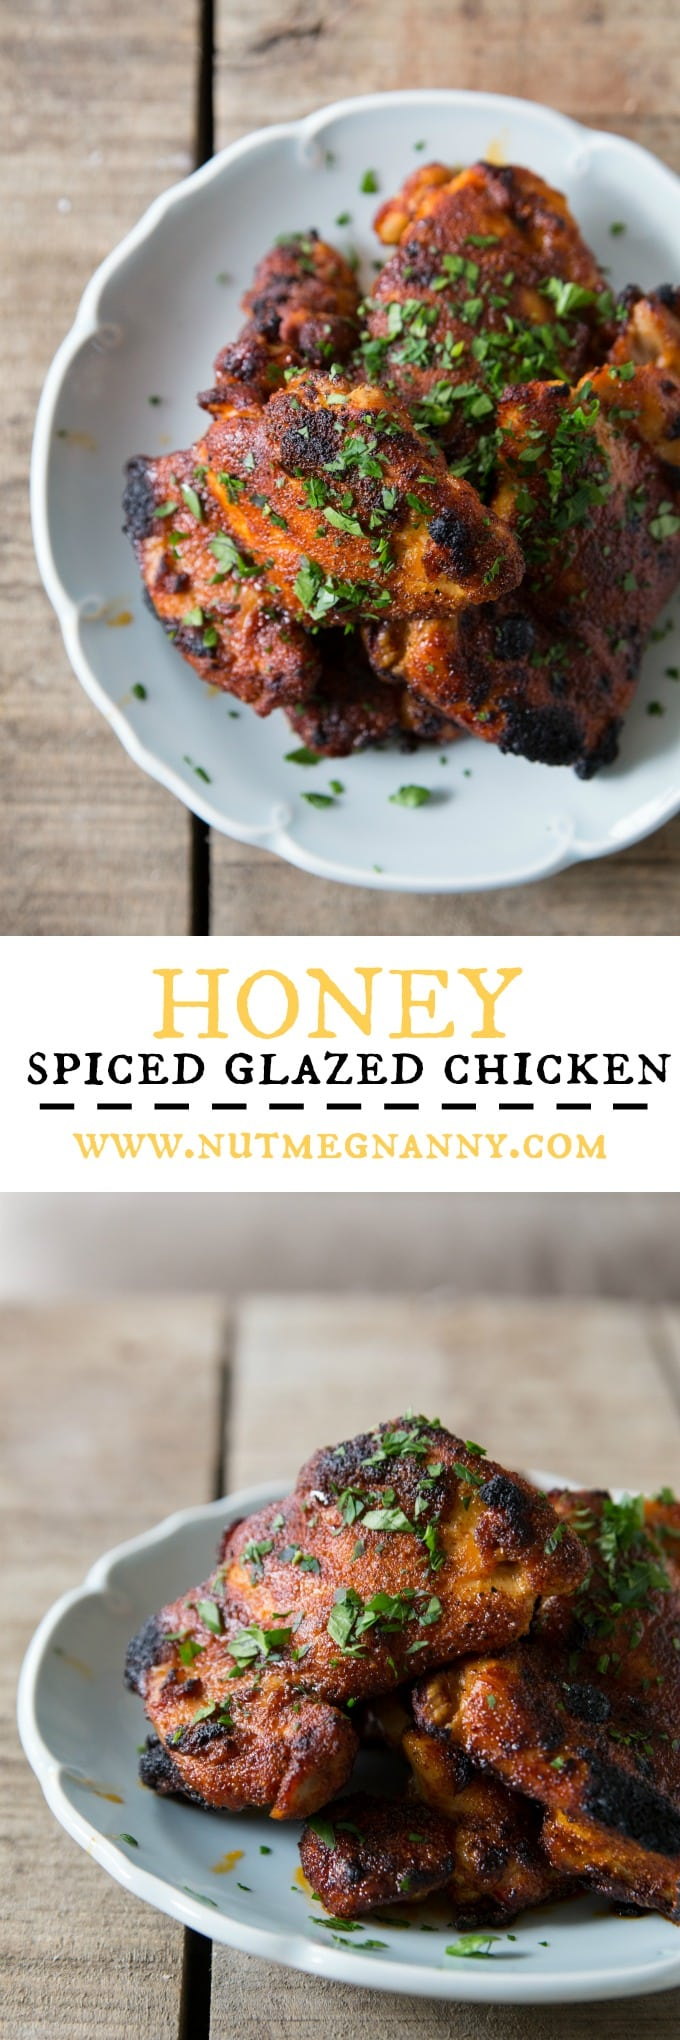 This delicious honey spiced glazed chicken is made with chicken thighs coated in flavorful spices and basted with a sweet honey glaze. It's easily cooked under the broiler or on the grill. It's sweet, spicy and oh so delicious!